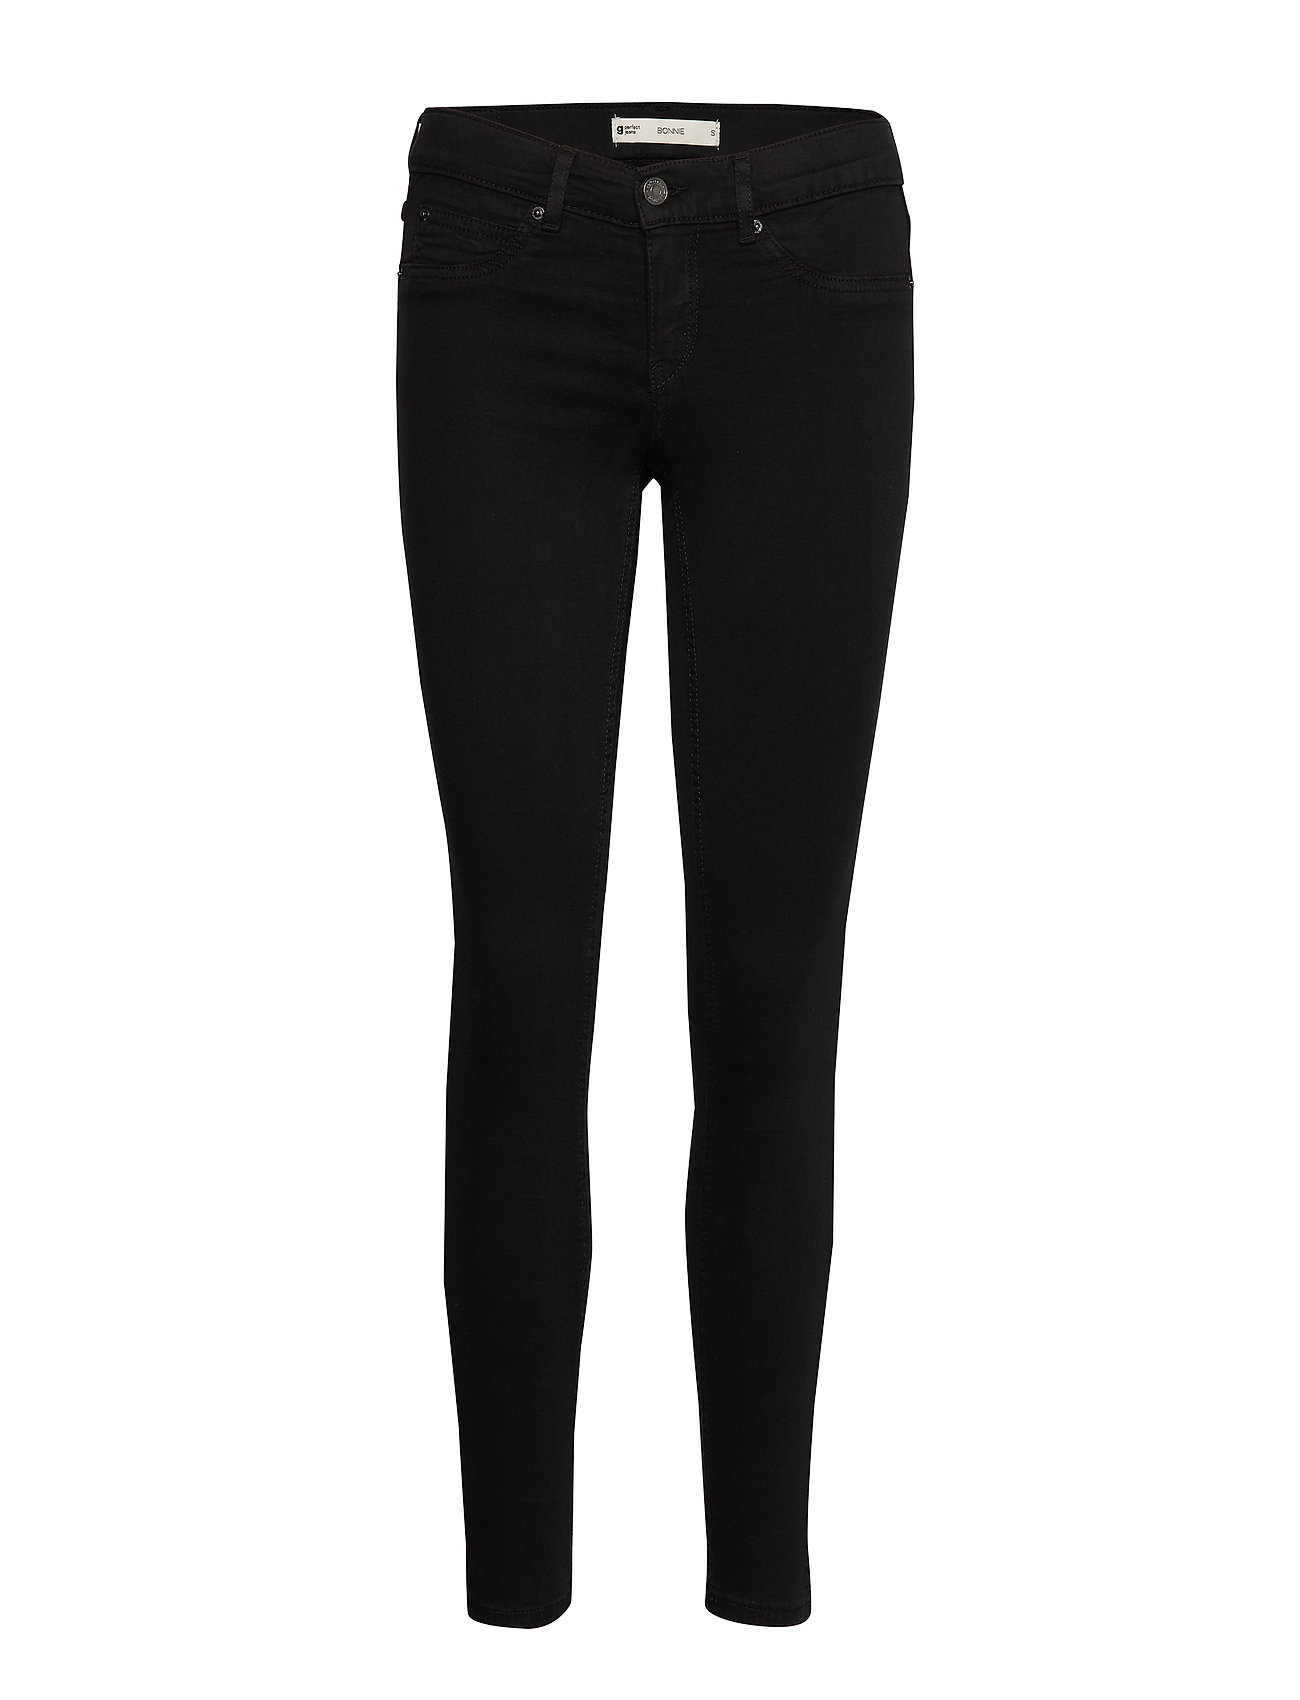 Gina Tricot Bonnie low waist jeans - BLACK